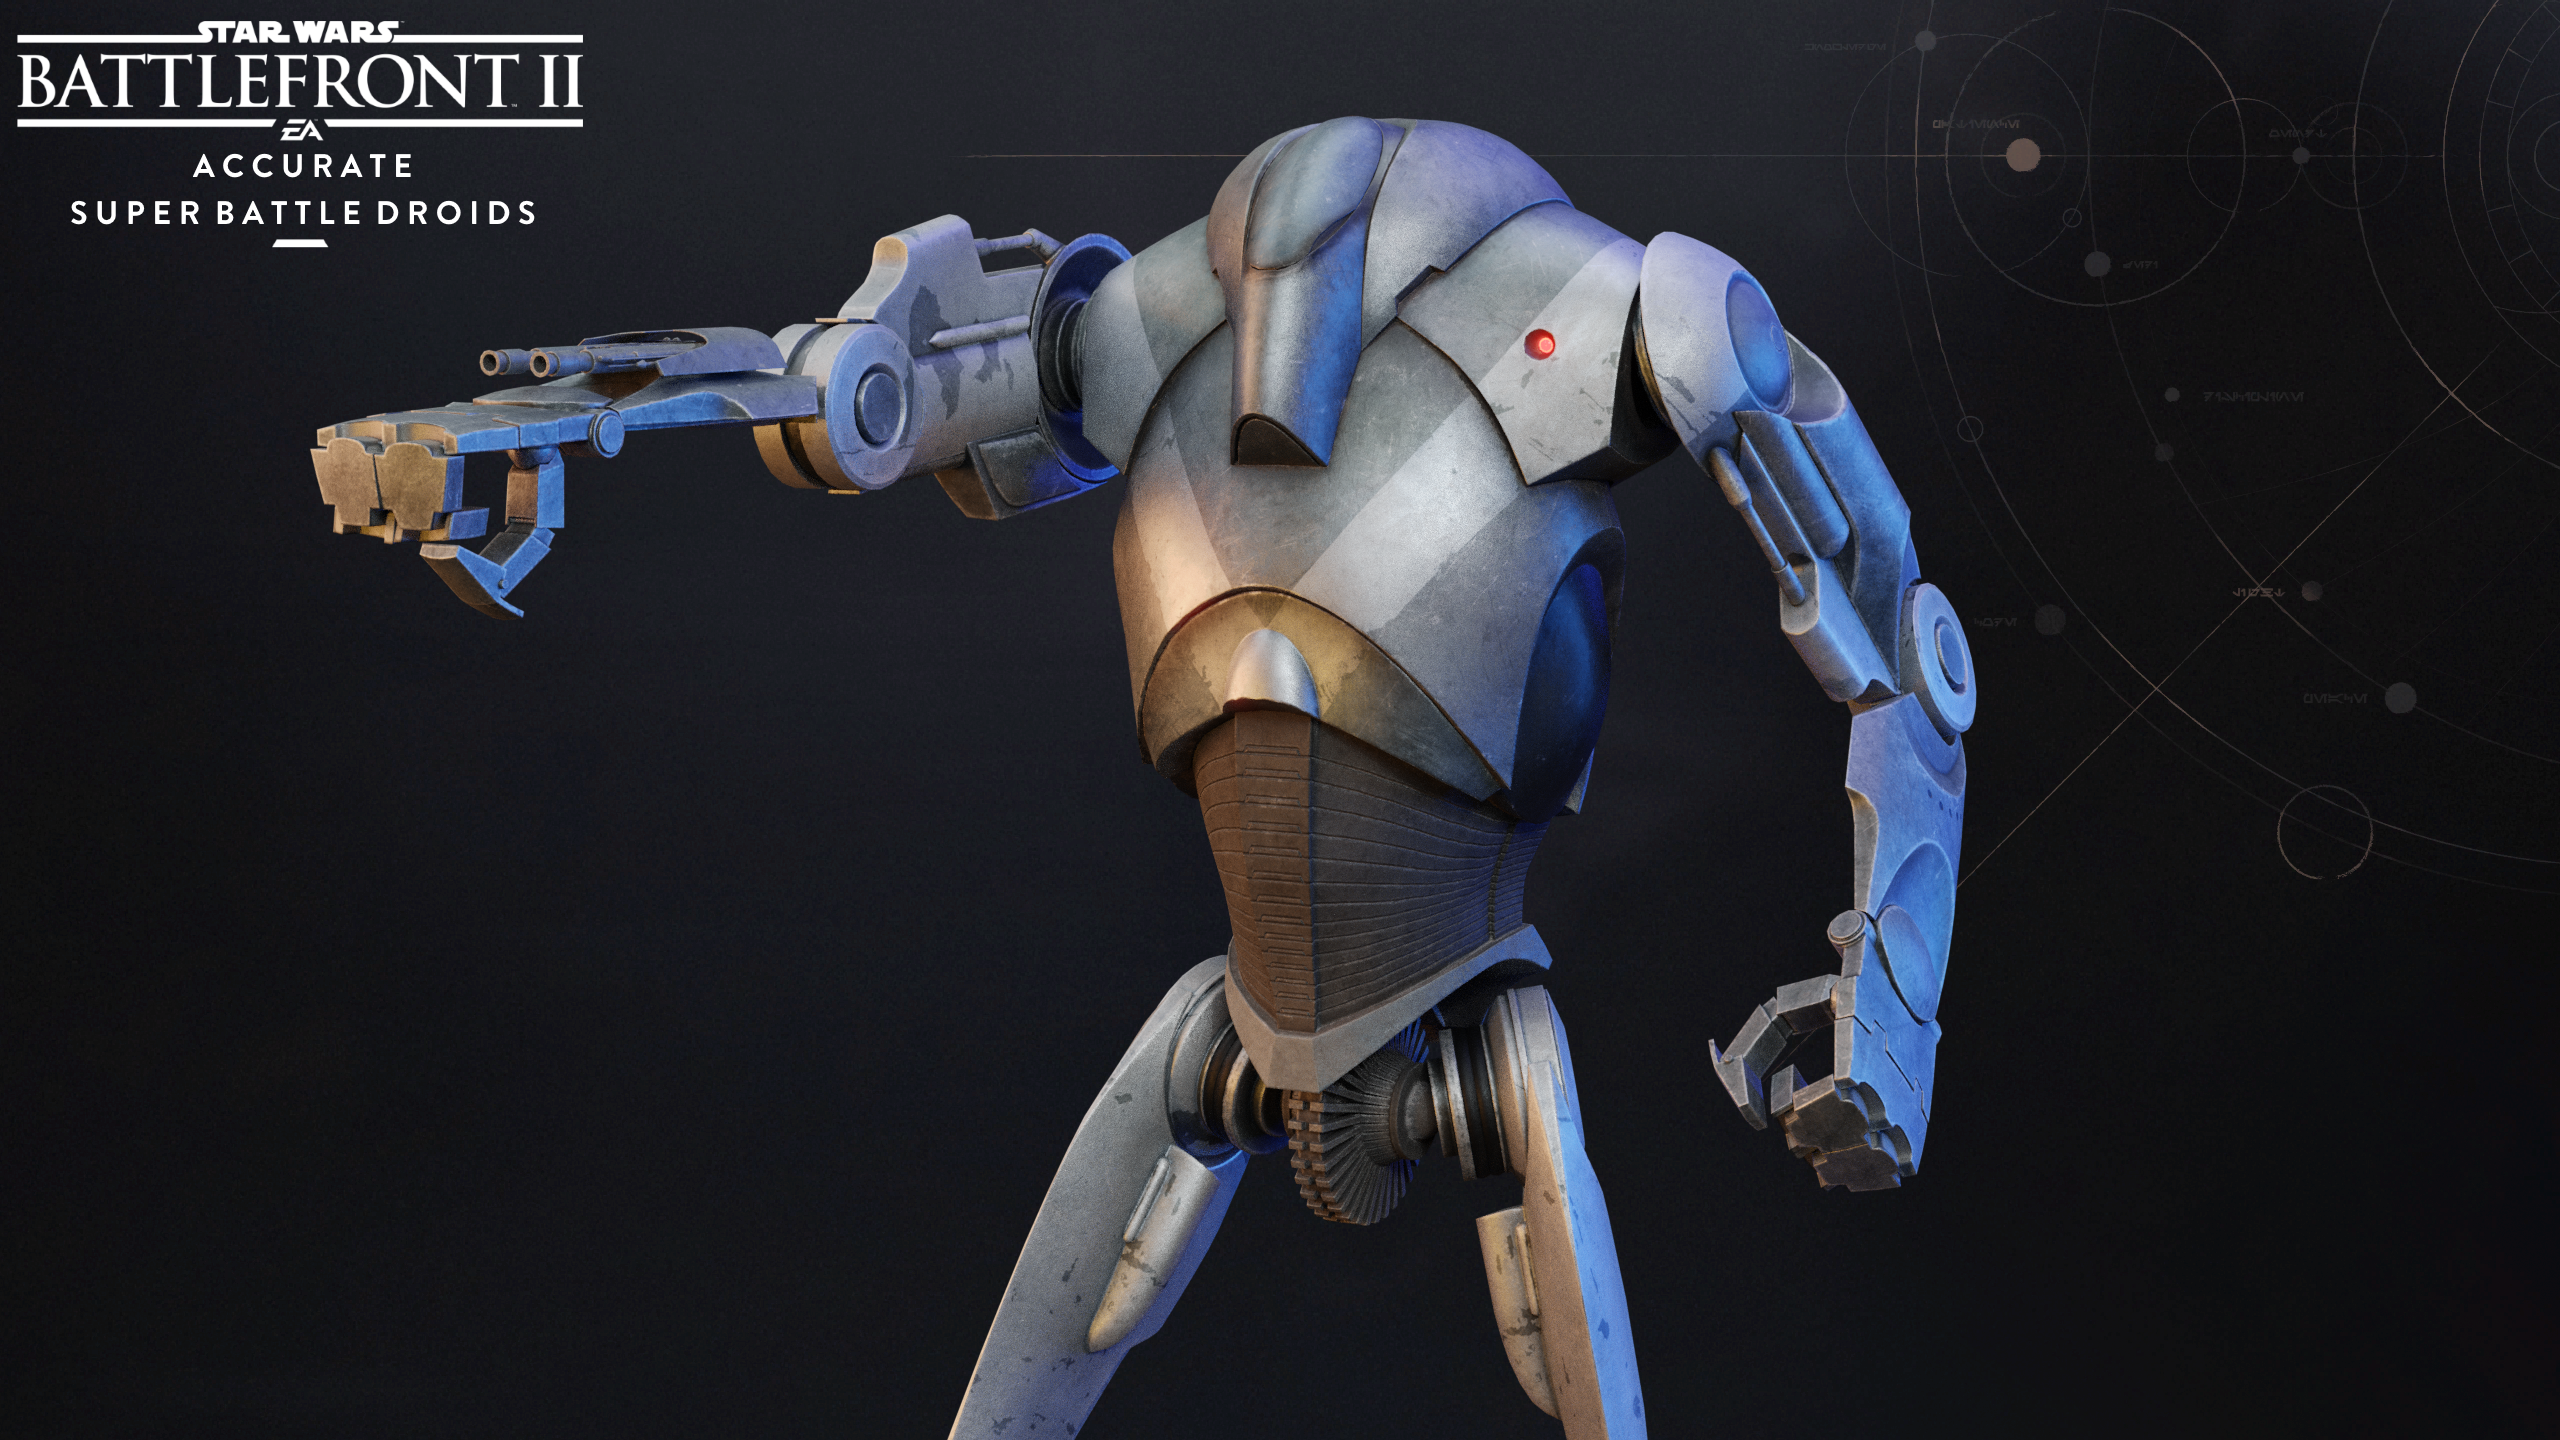 Accurate Super Battle Droids Updated At Star Wars Battlefront Ii 2017 Nexus Mods And Community